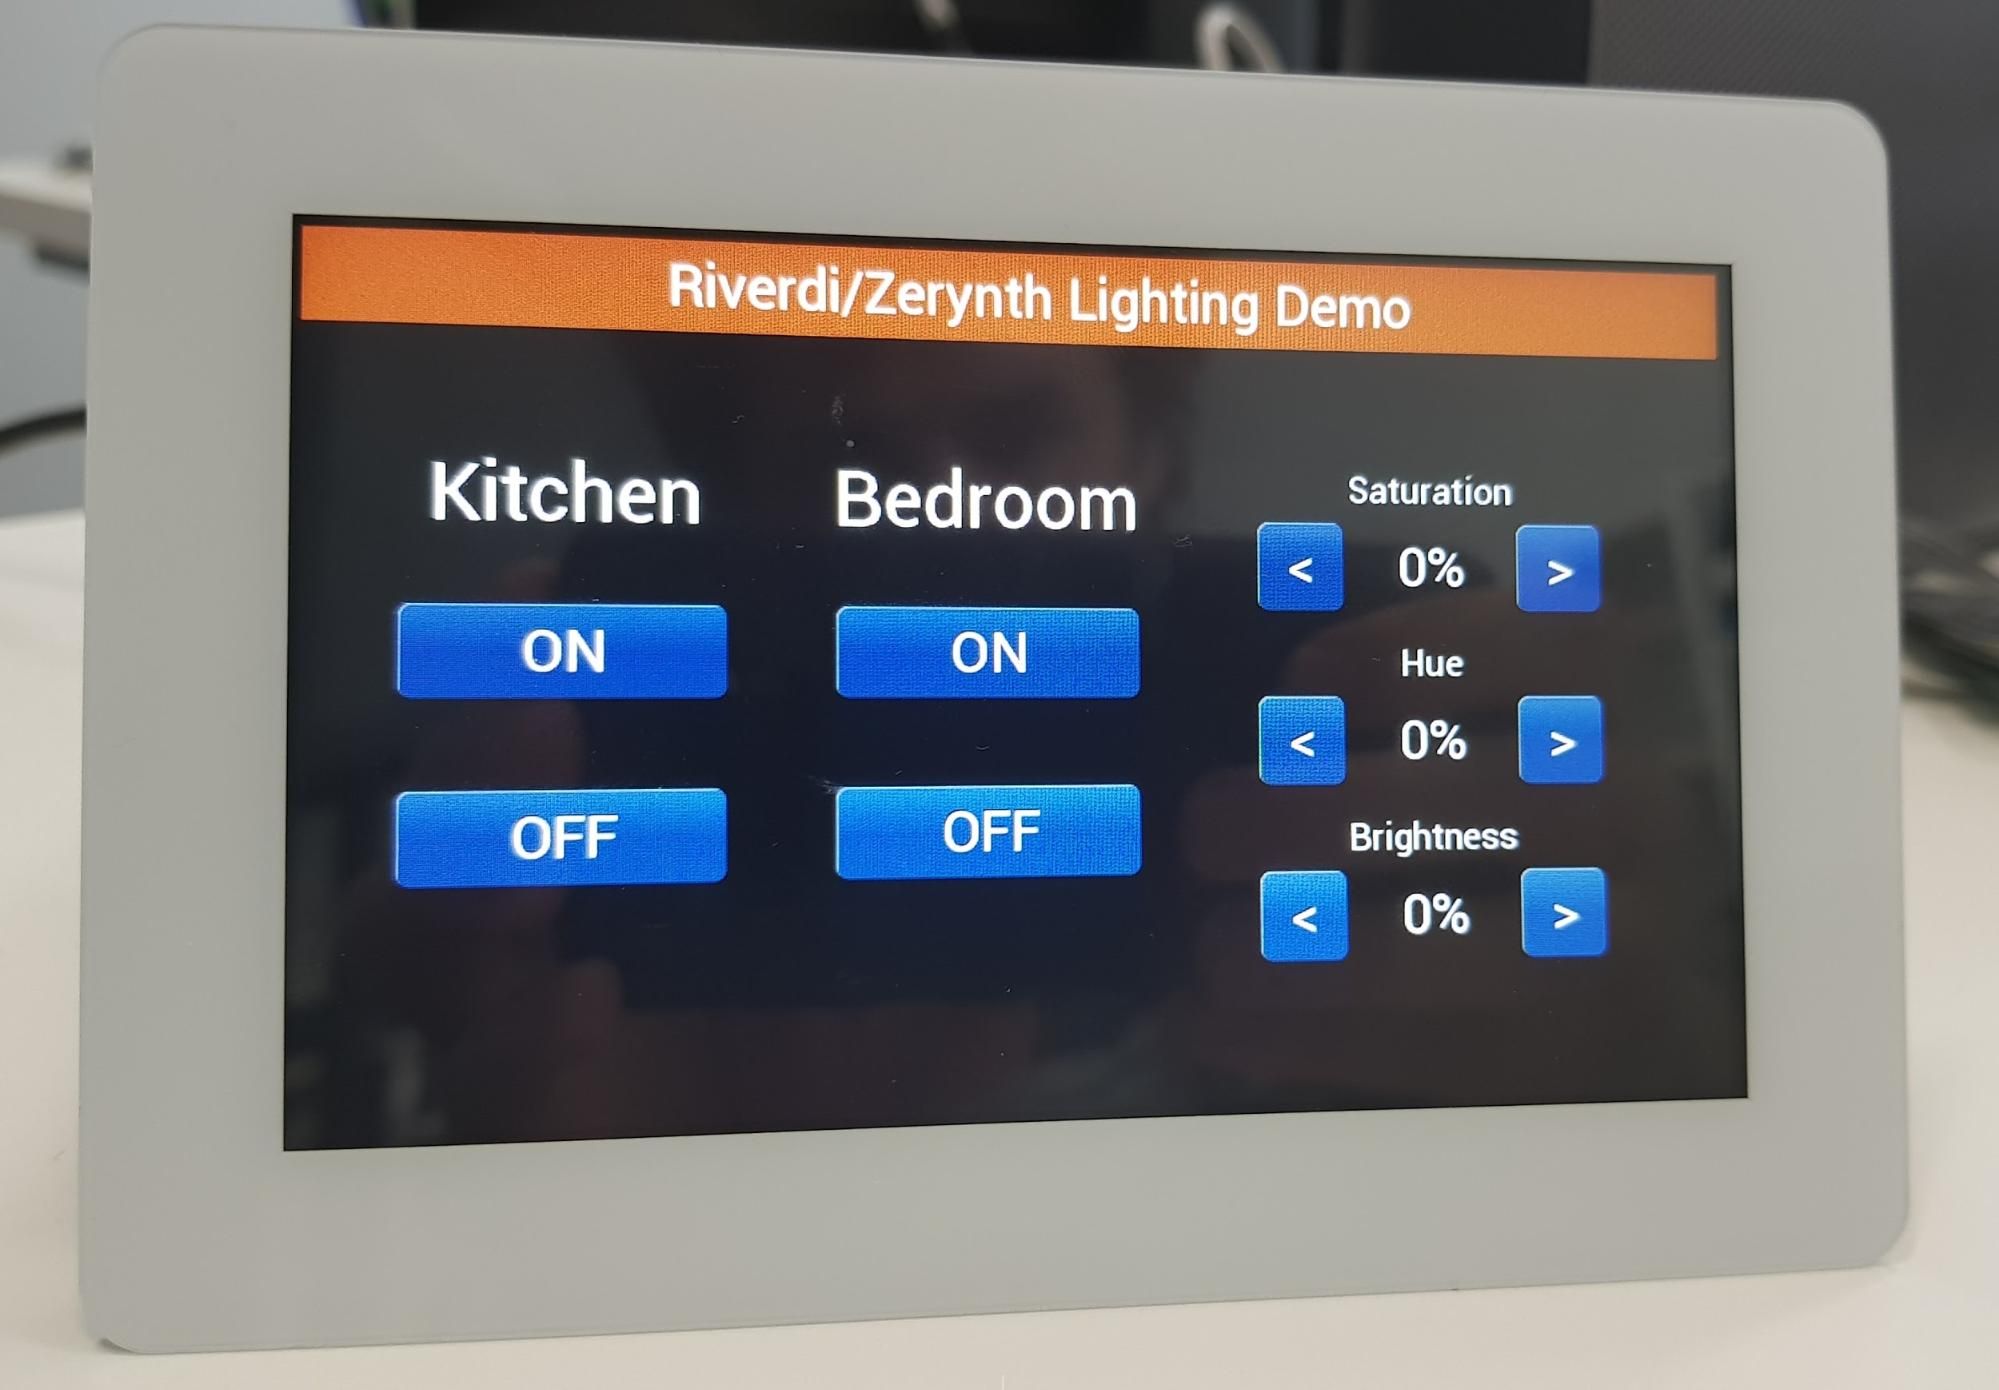 Philips Hue lighting demo - Riverdi